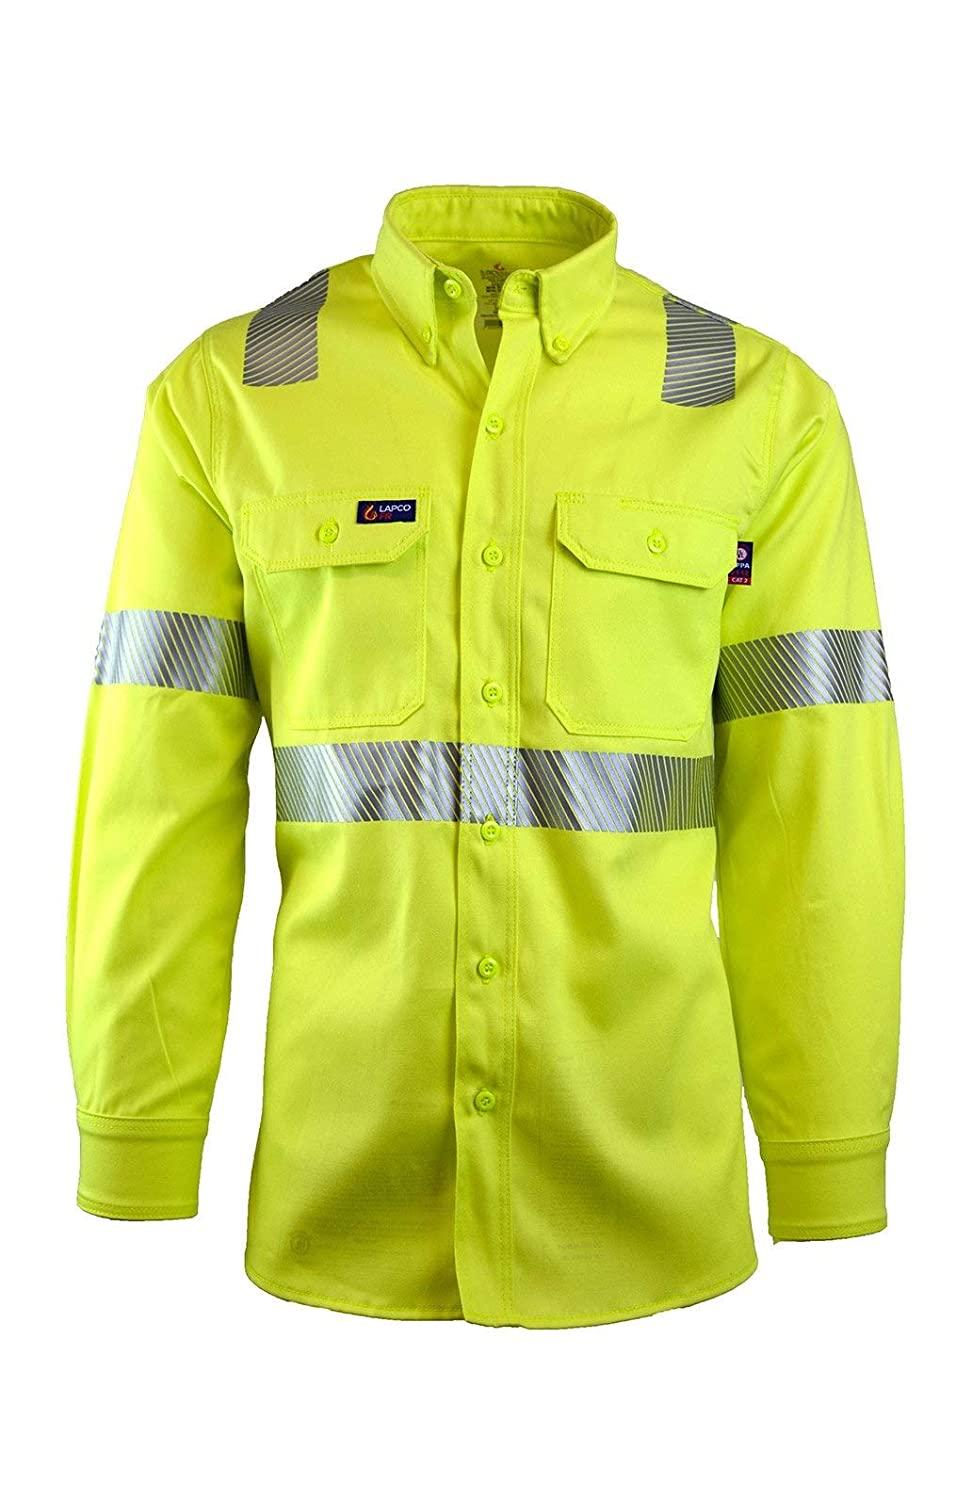 Lapco FR IHV7C3 5XL Free shipping anywhere in the nation REG Max 70% OFF 100% Vol Capacity Shirt Cotton Uniform